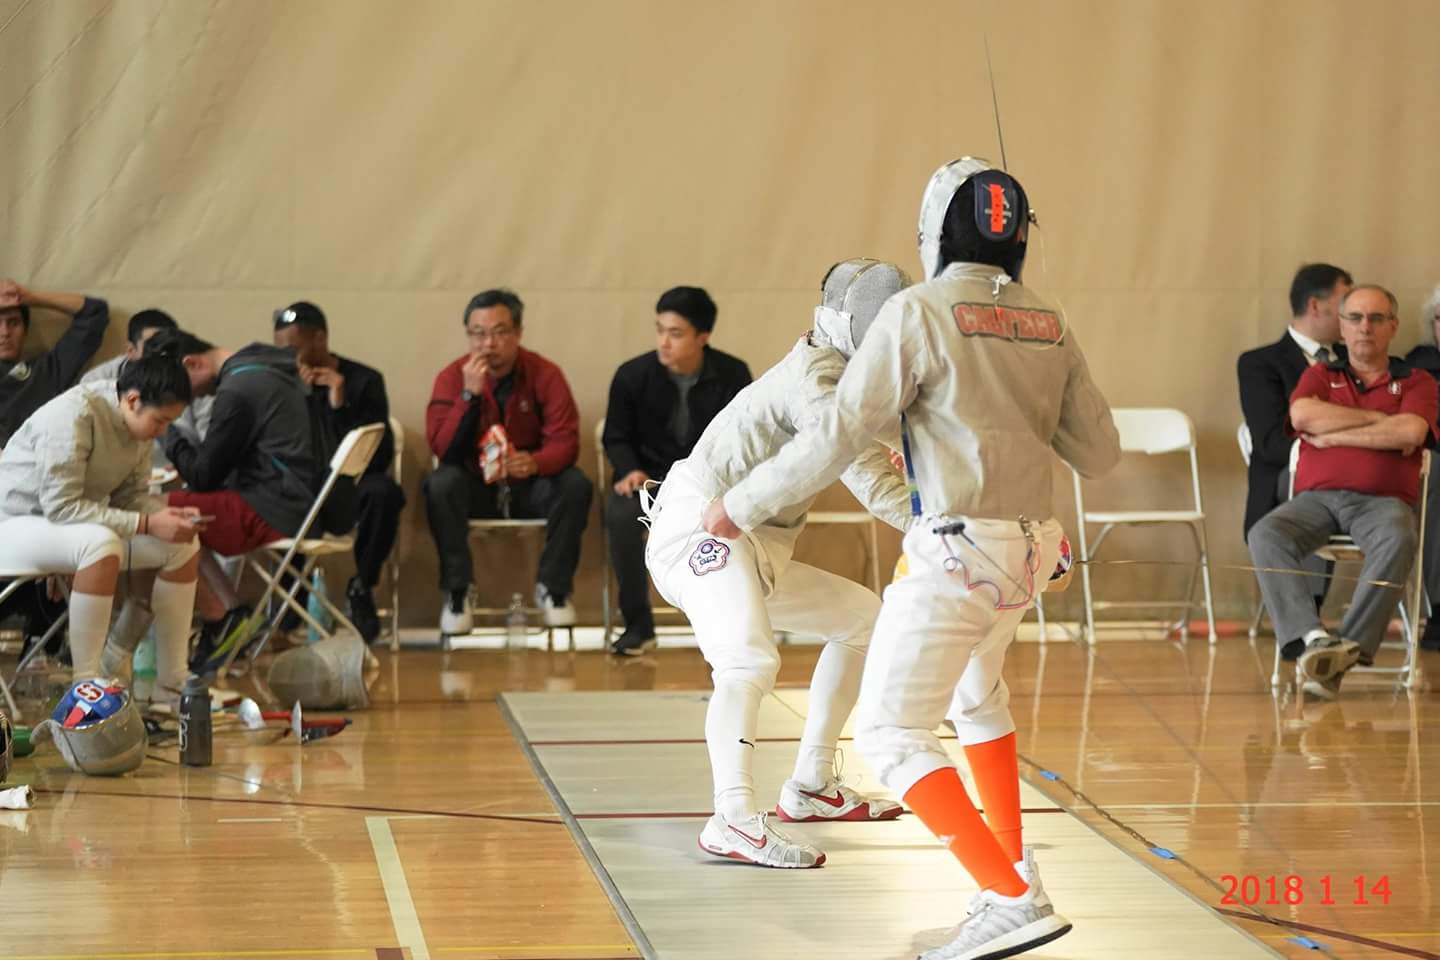 Caltech Fencers Compete at NCAA Regionals